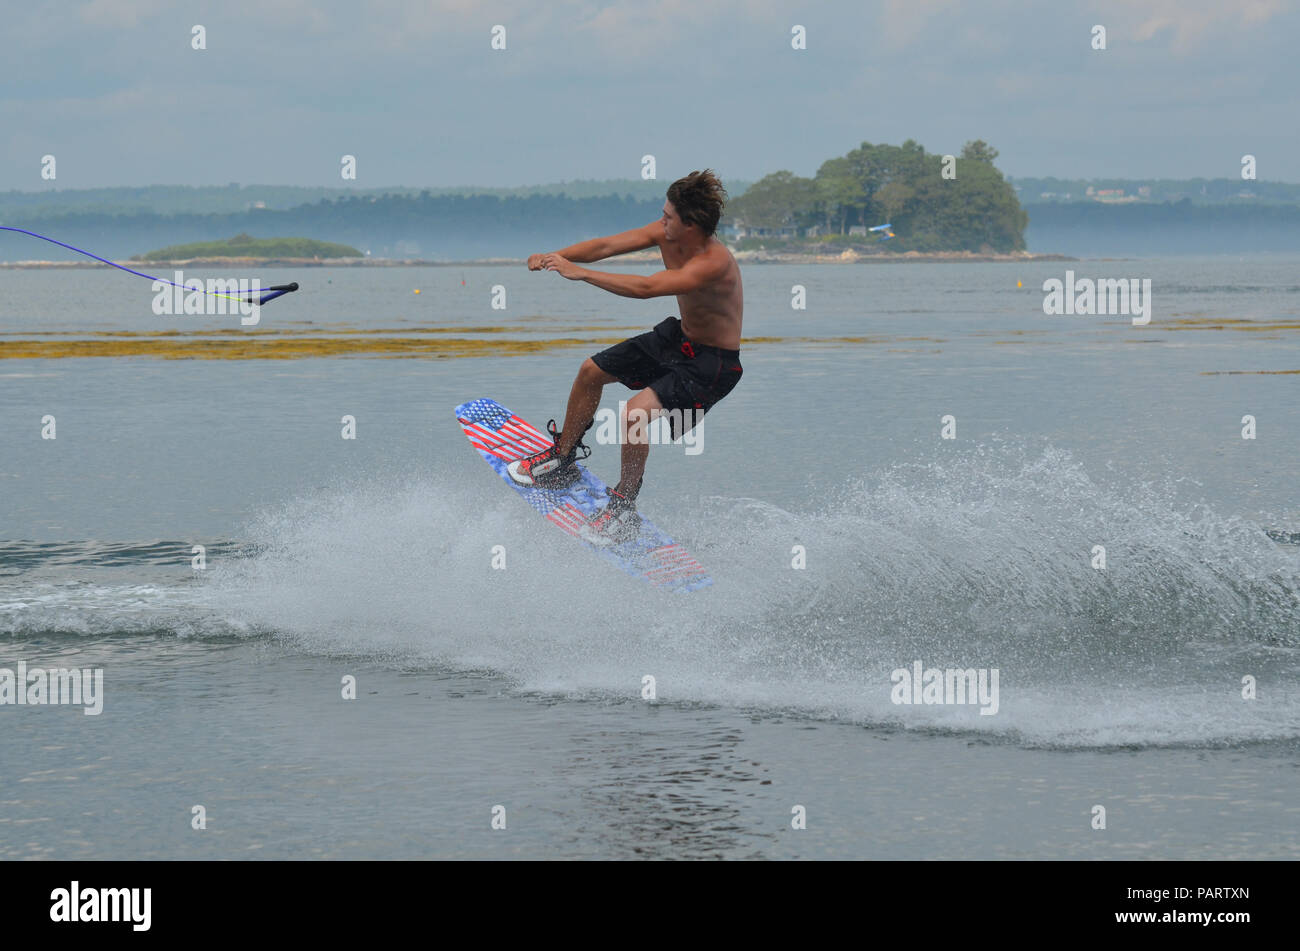 Wakeboarder letting go of the two rope while in the air. - Stock Image